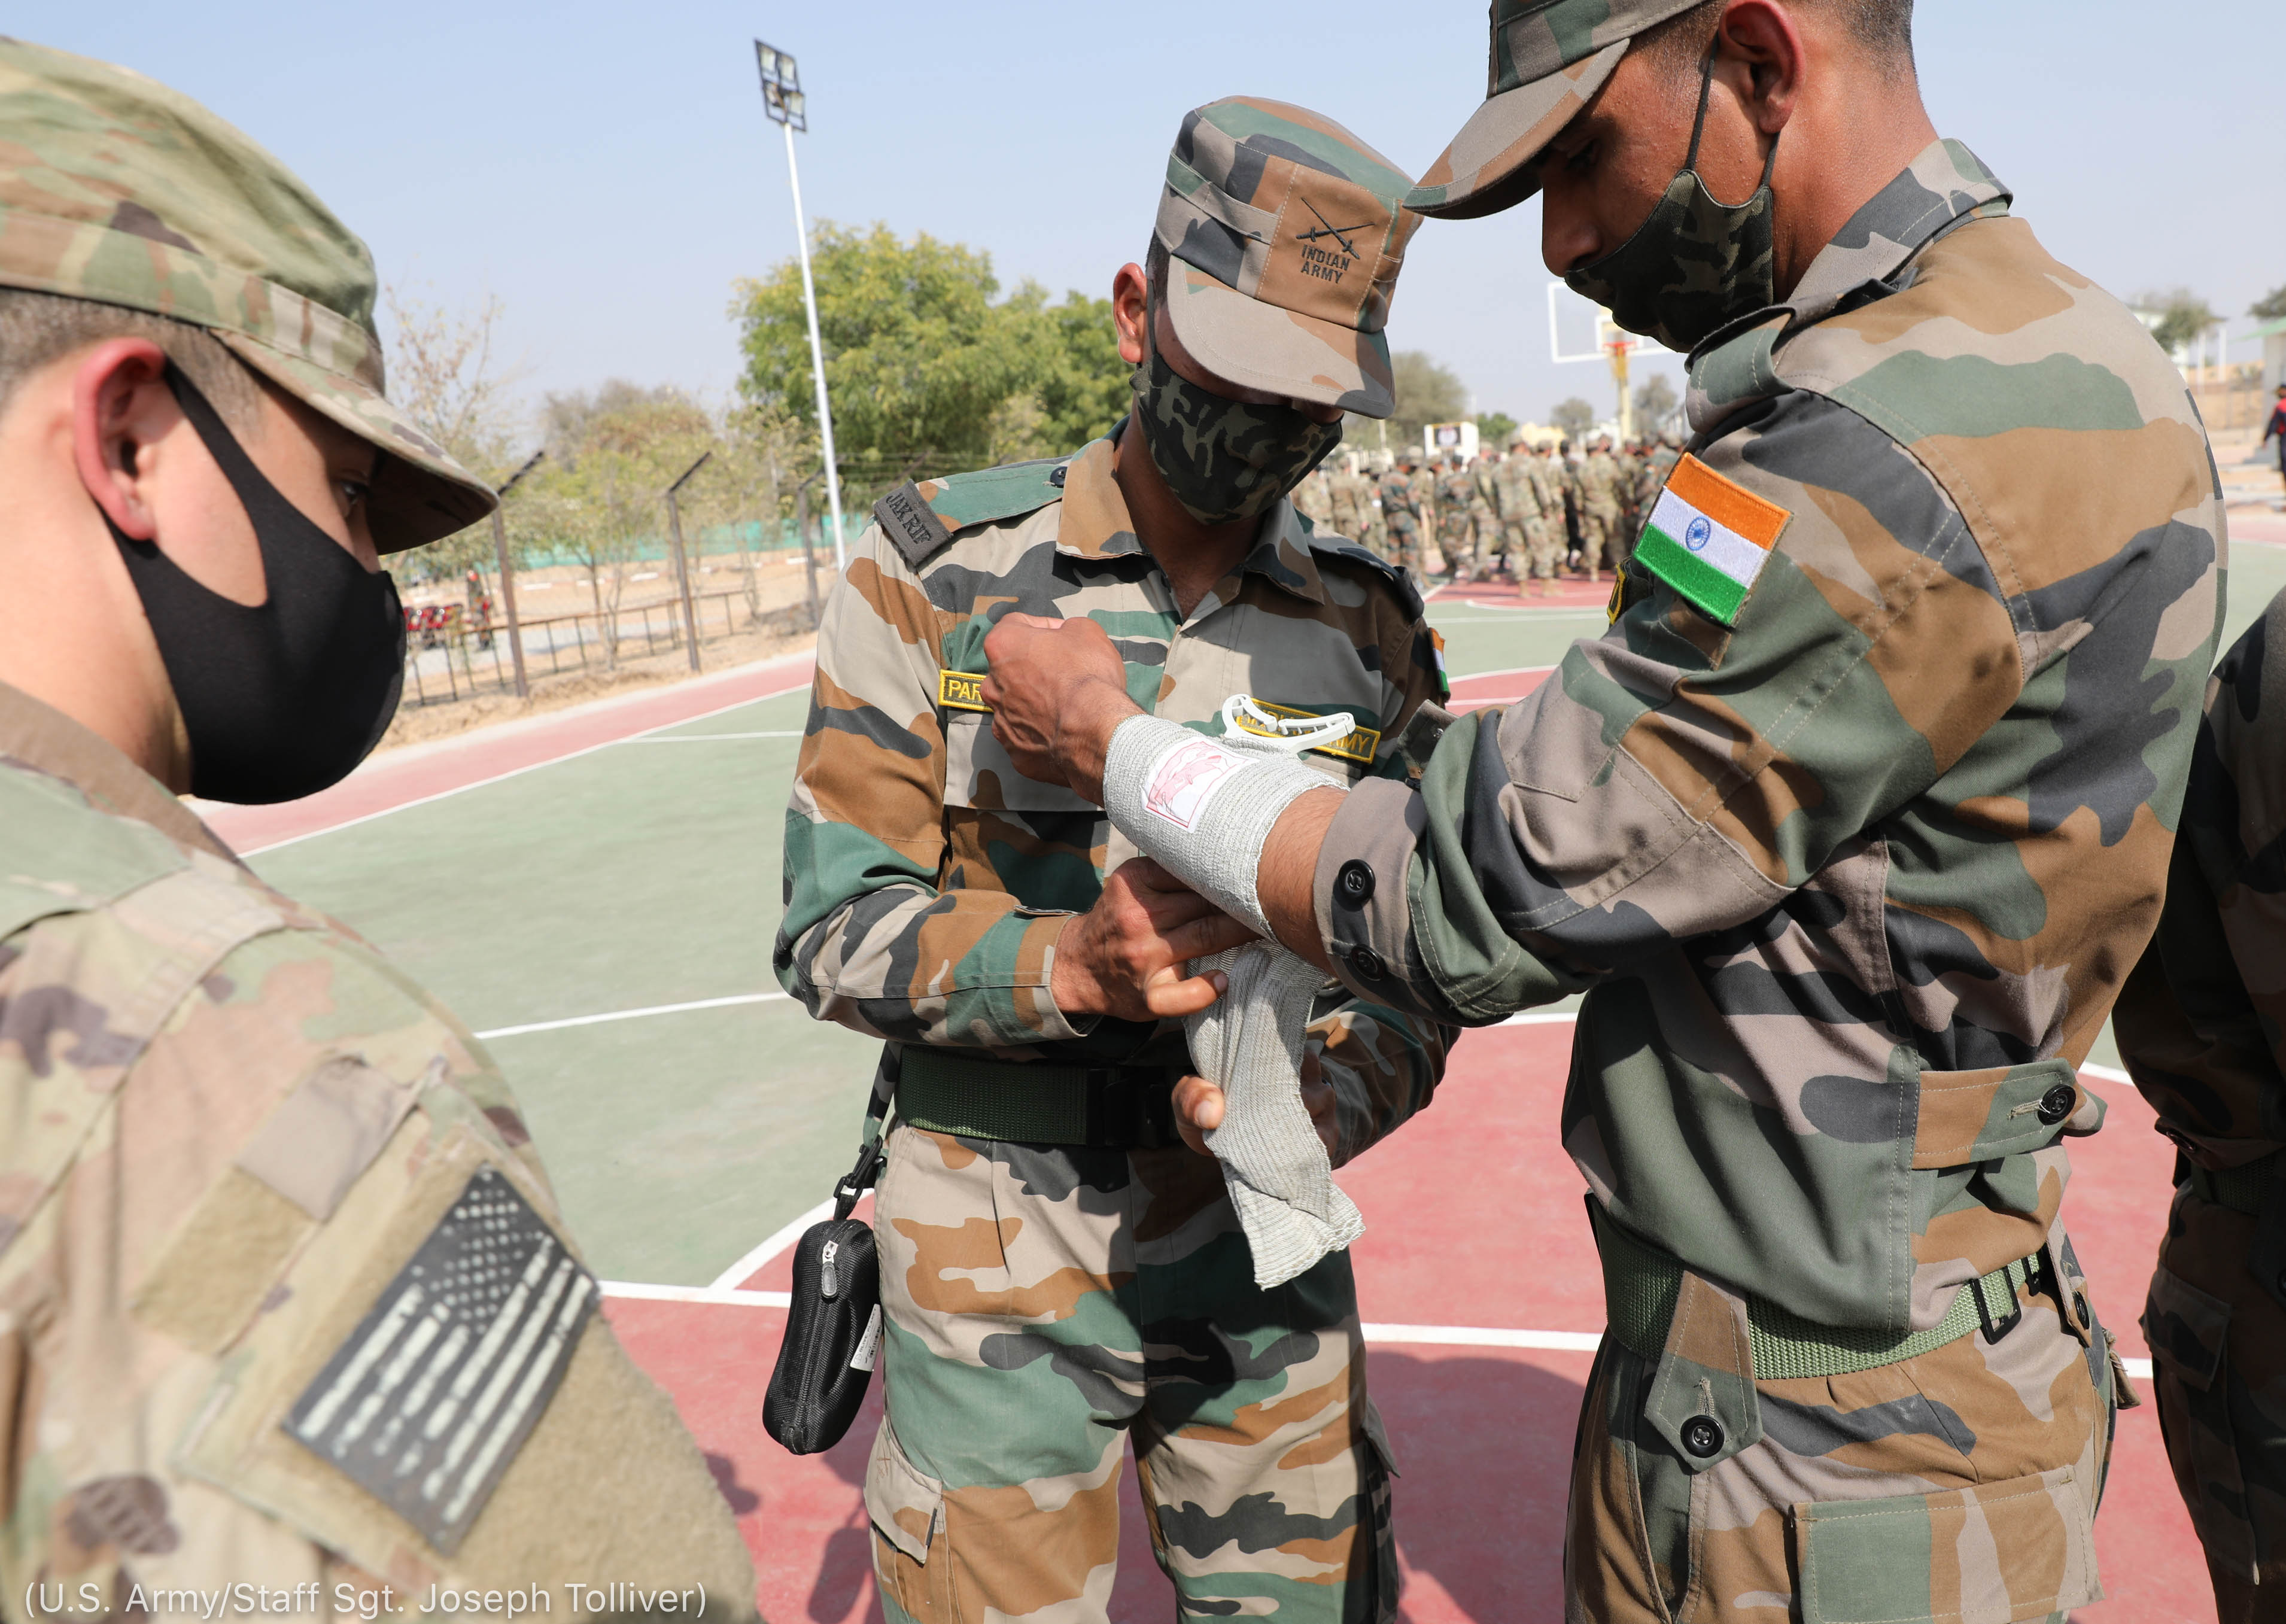 People in Indian and U.S. military uniforms wrapping bandages around arms (U.S. Army/Staff Sgt. Joseph Tolliver)